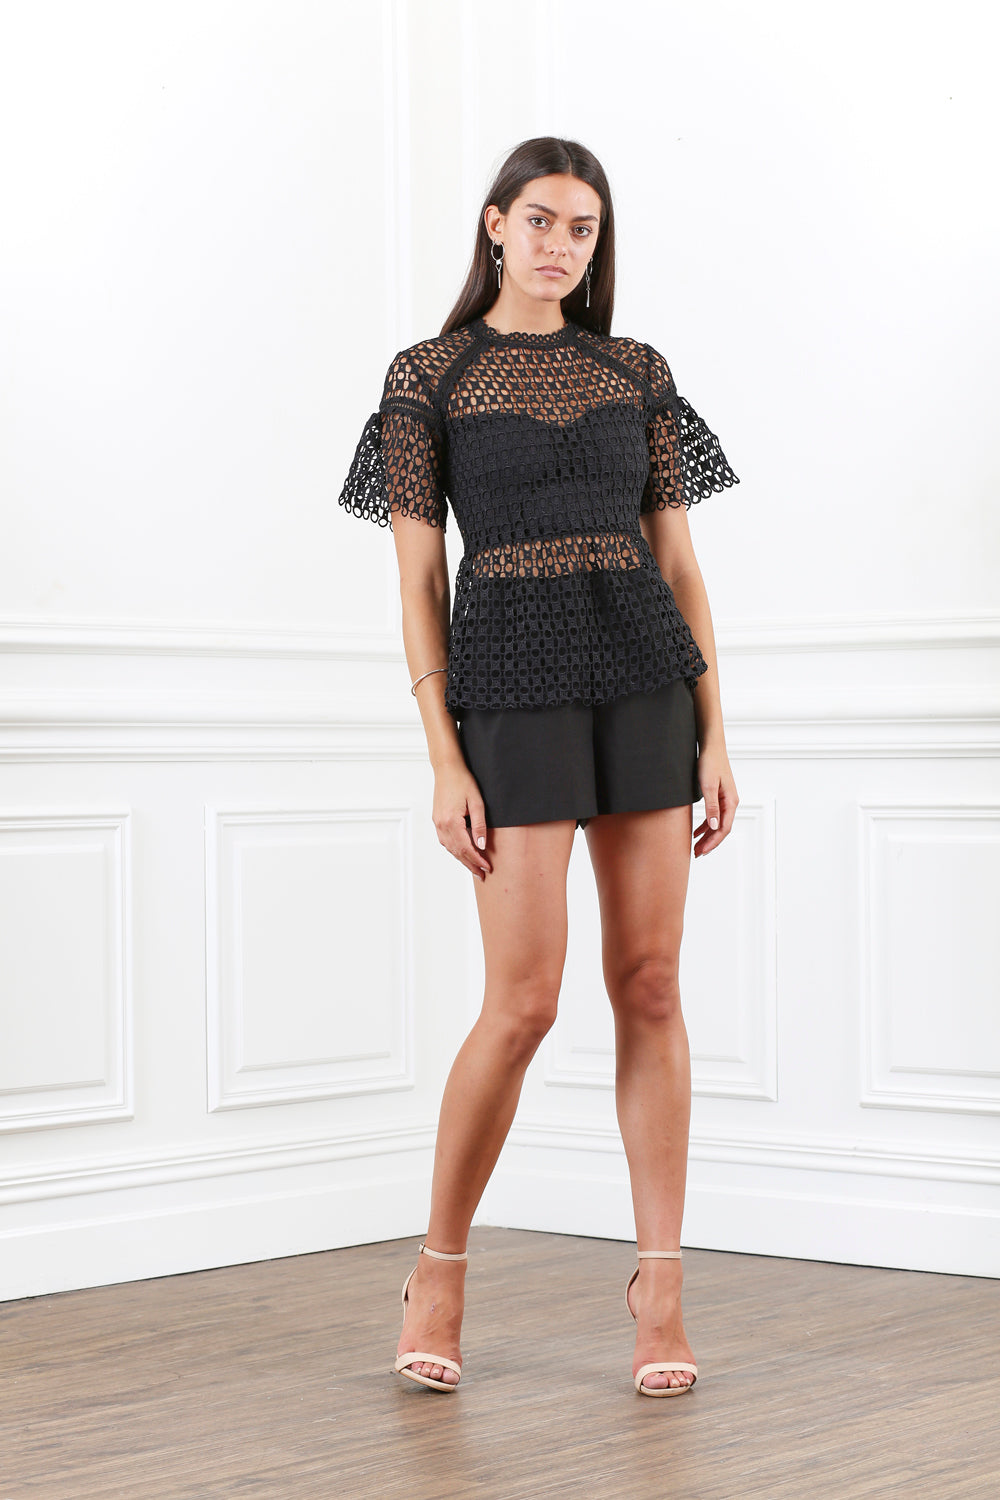 ORNATE CIRCLE LACE TOP